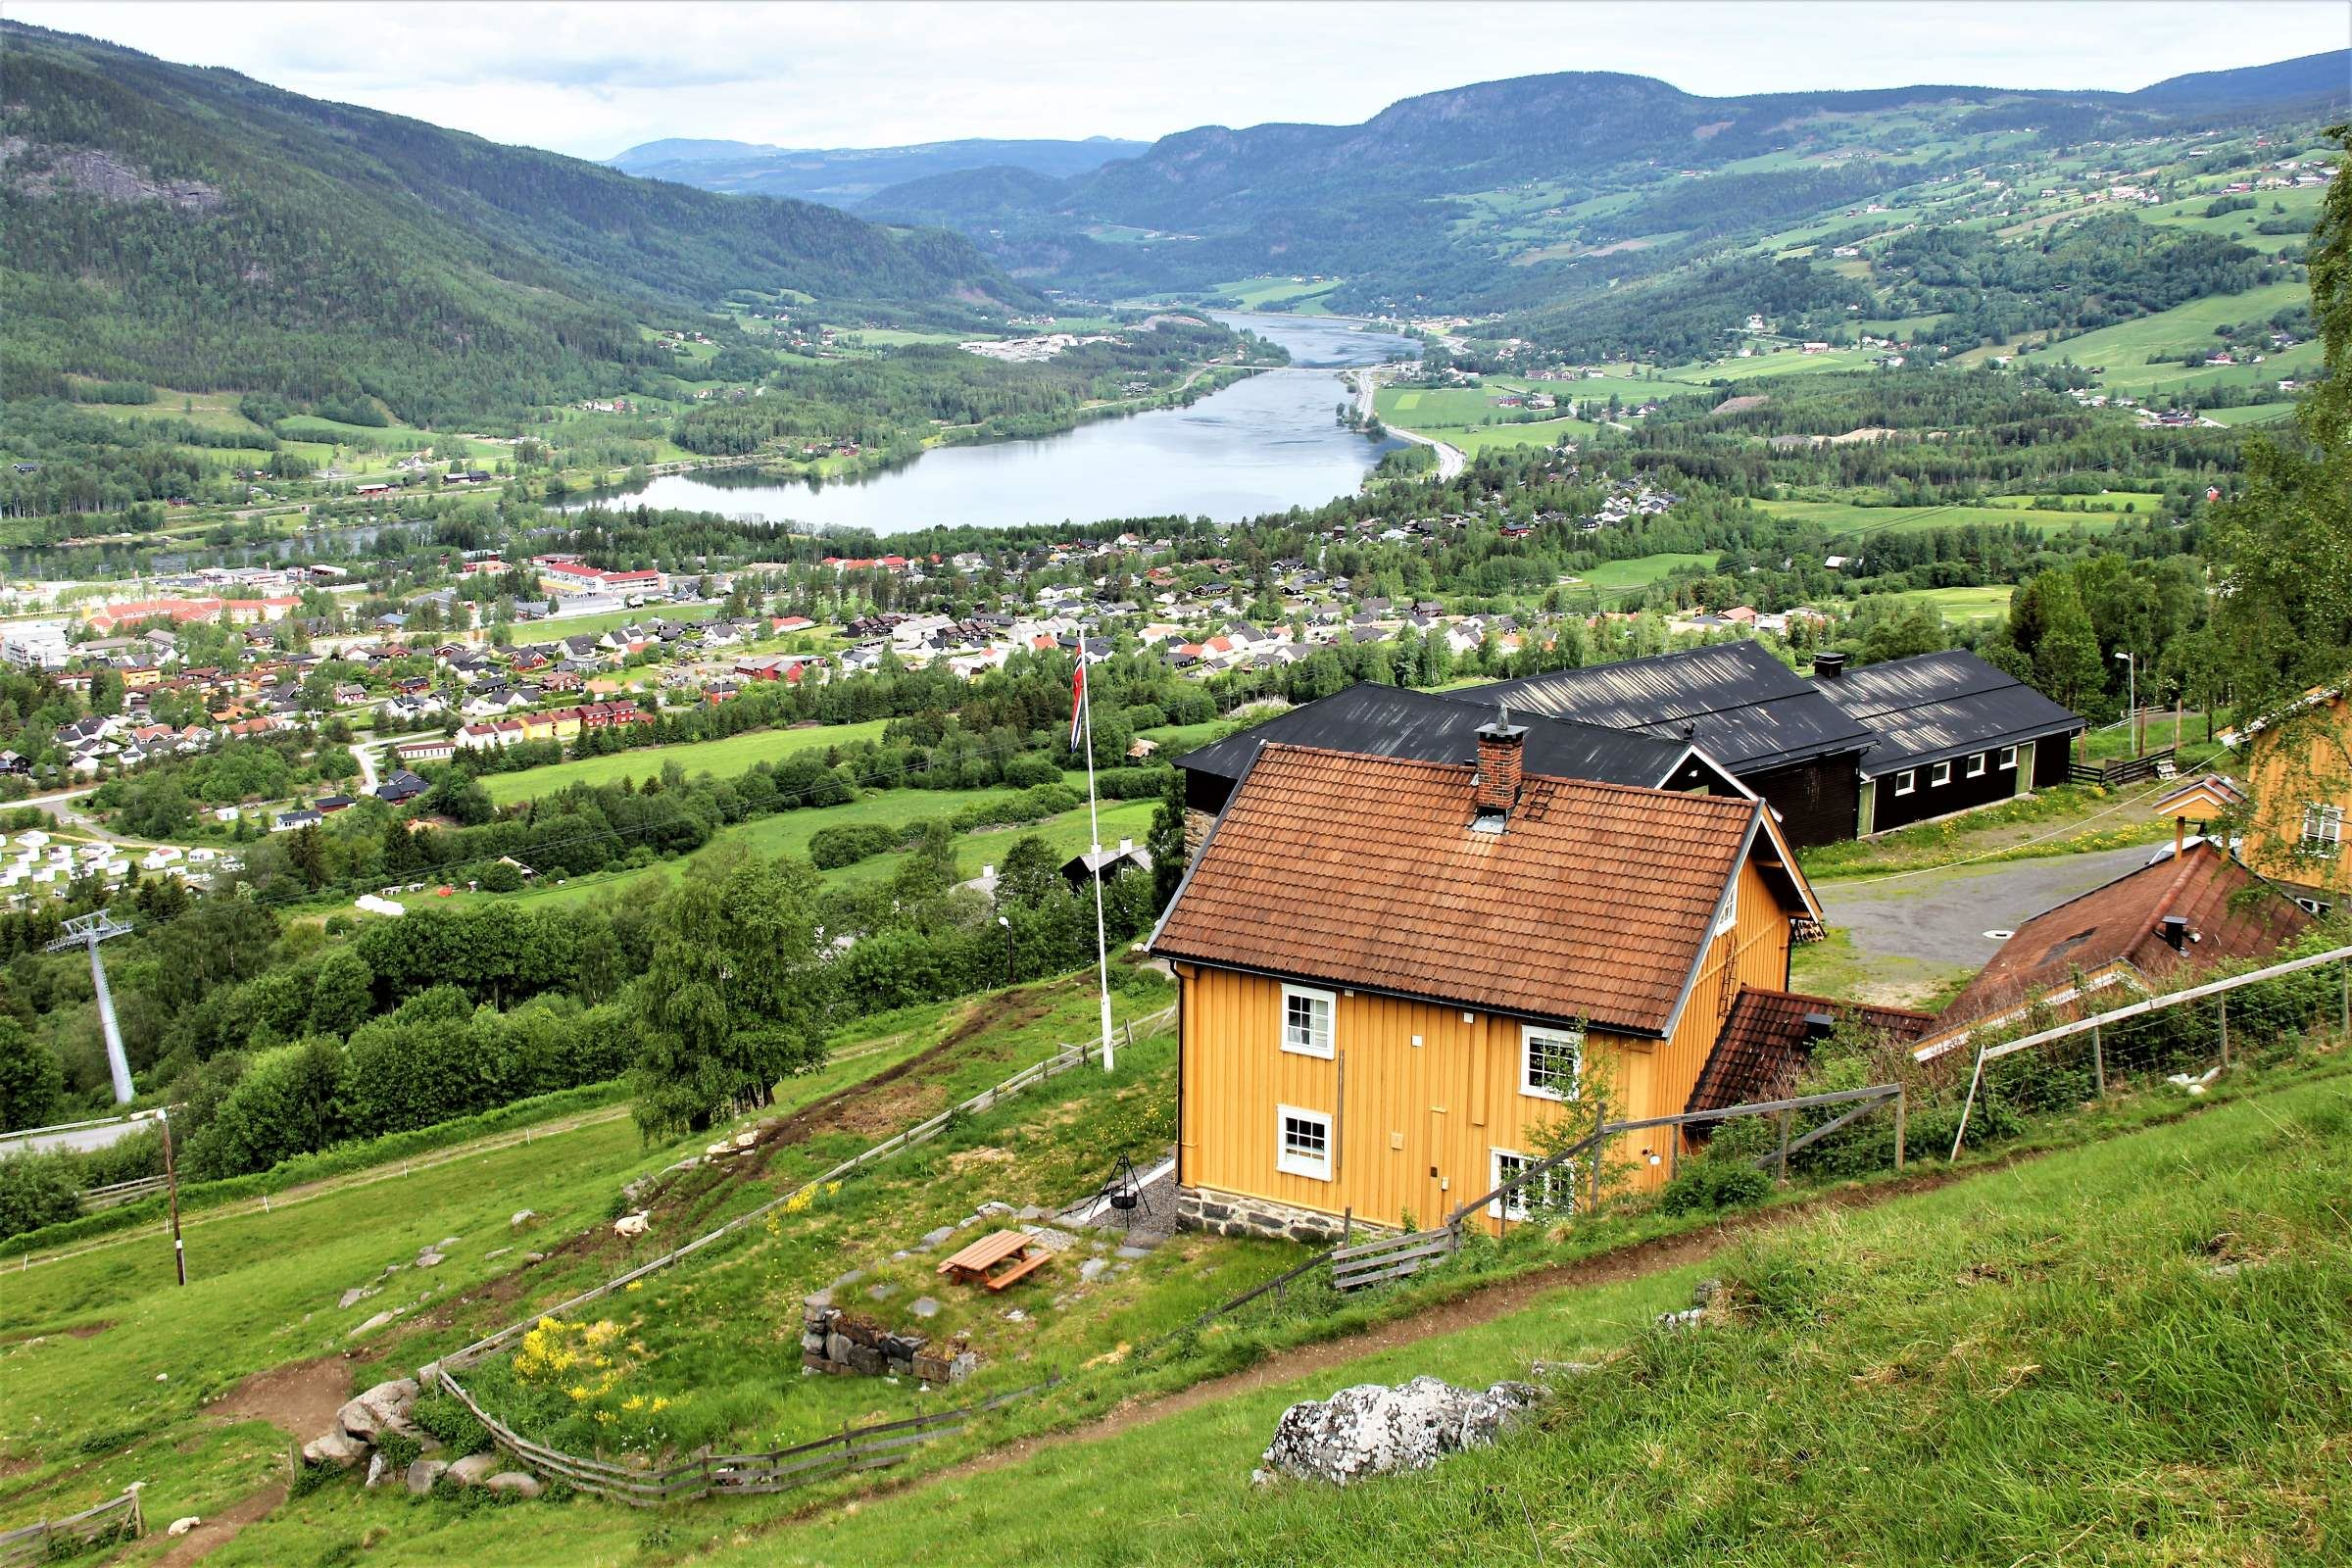 Hiking in Lillehammer mountains